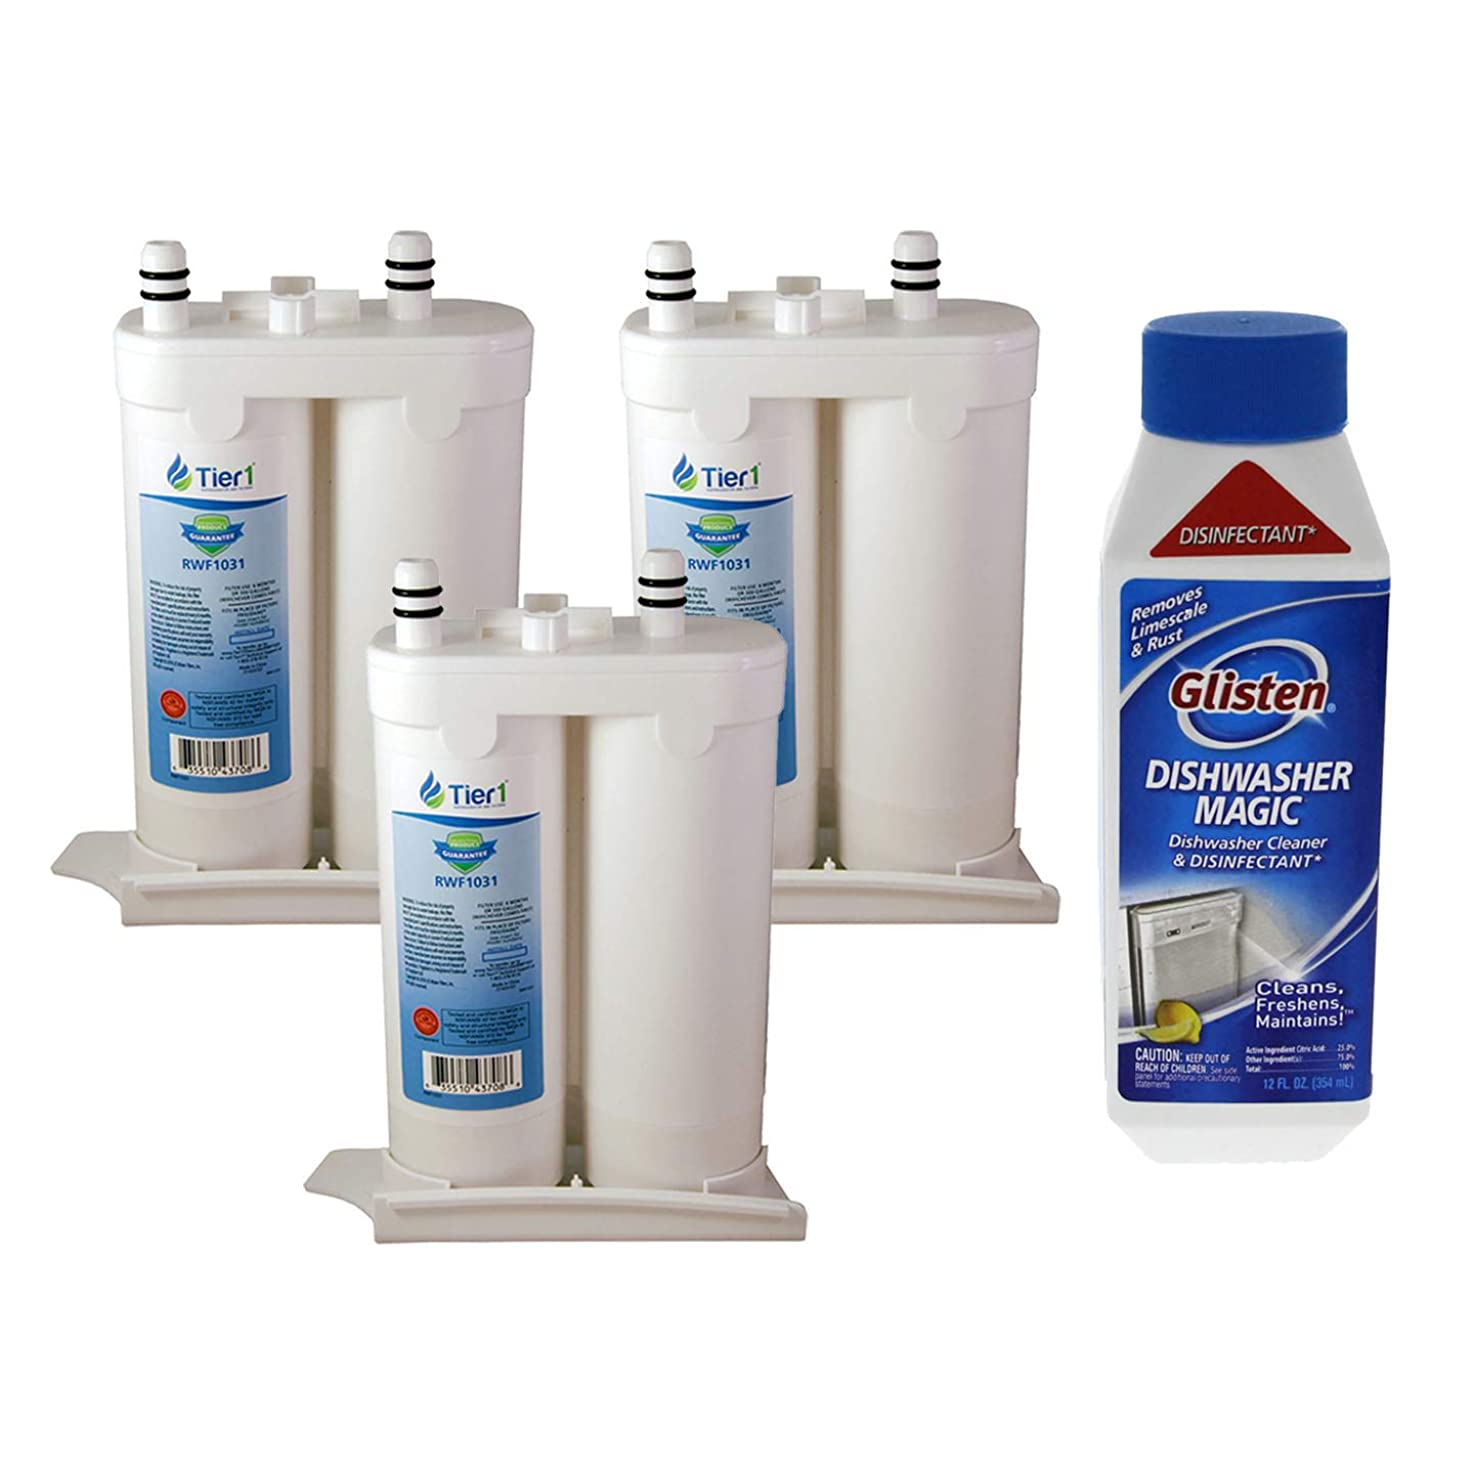 Tier1 Replacement for Frigidaire WF2CB Electrolux NGFC 2000, 1004-42-FA, 469911, 469916, FC 100 Refrigerator Water Filter and DM06N Glisten Dishwasher Magic Dishwasher Cleaner Bundle (3 Pack)